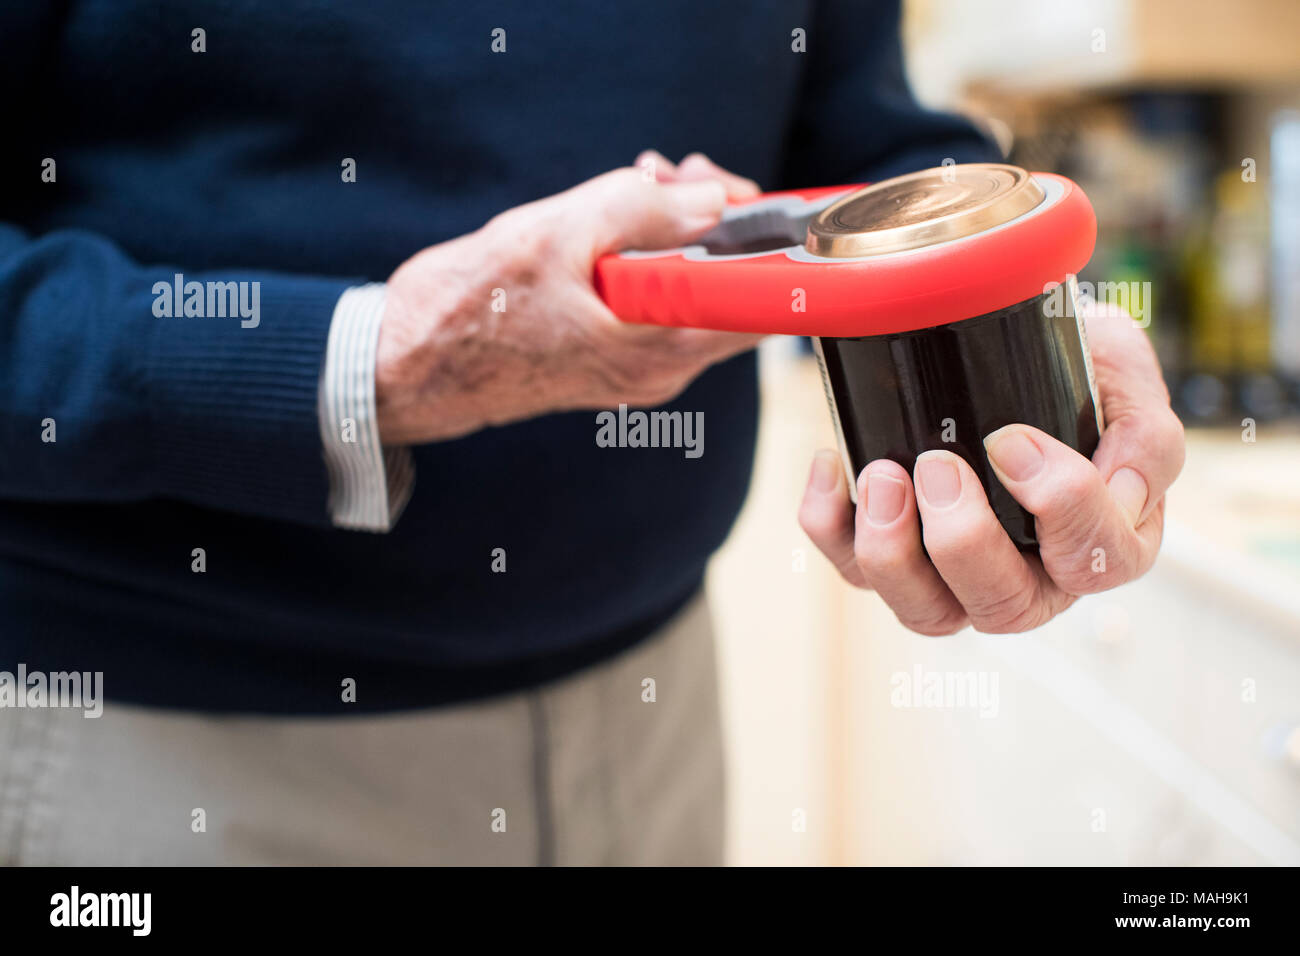 Close Up Of Senior Man Taking Lid Off Jar With Kitchen Aid - Stock Image